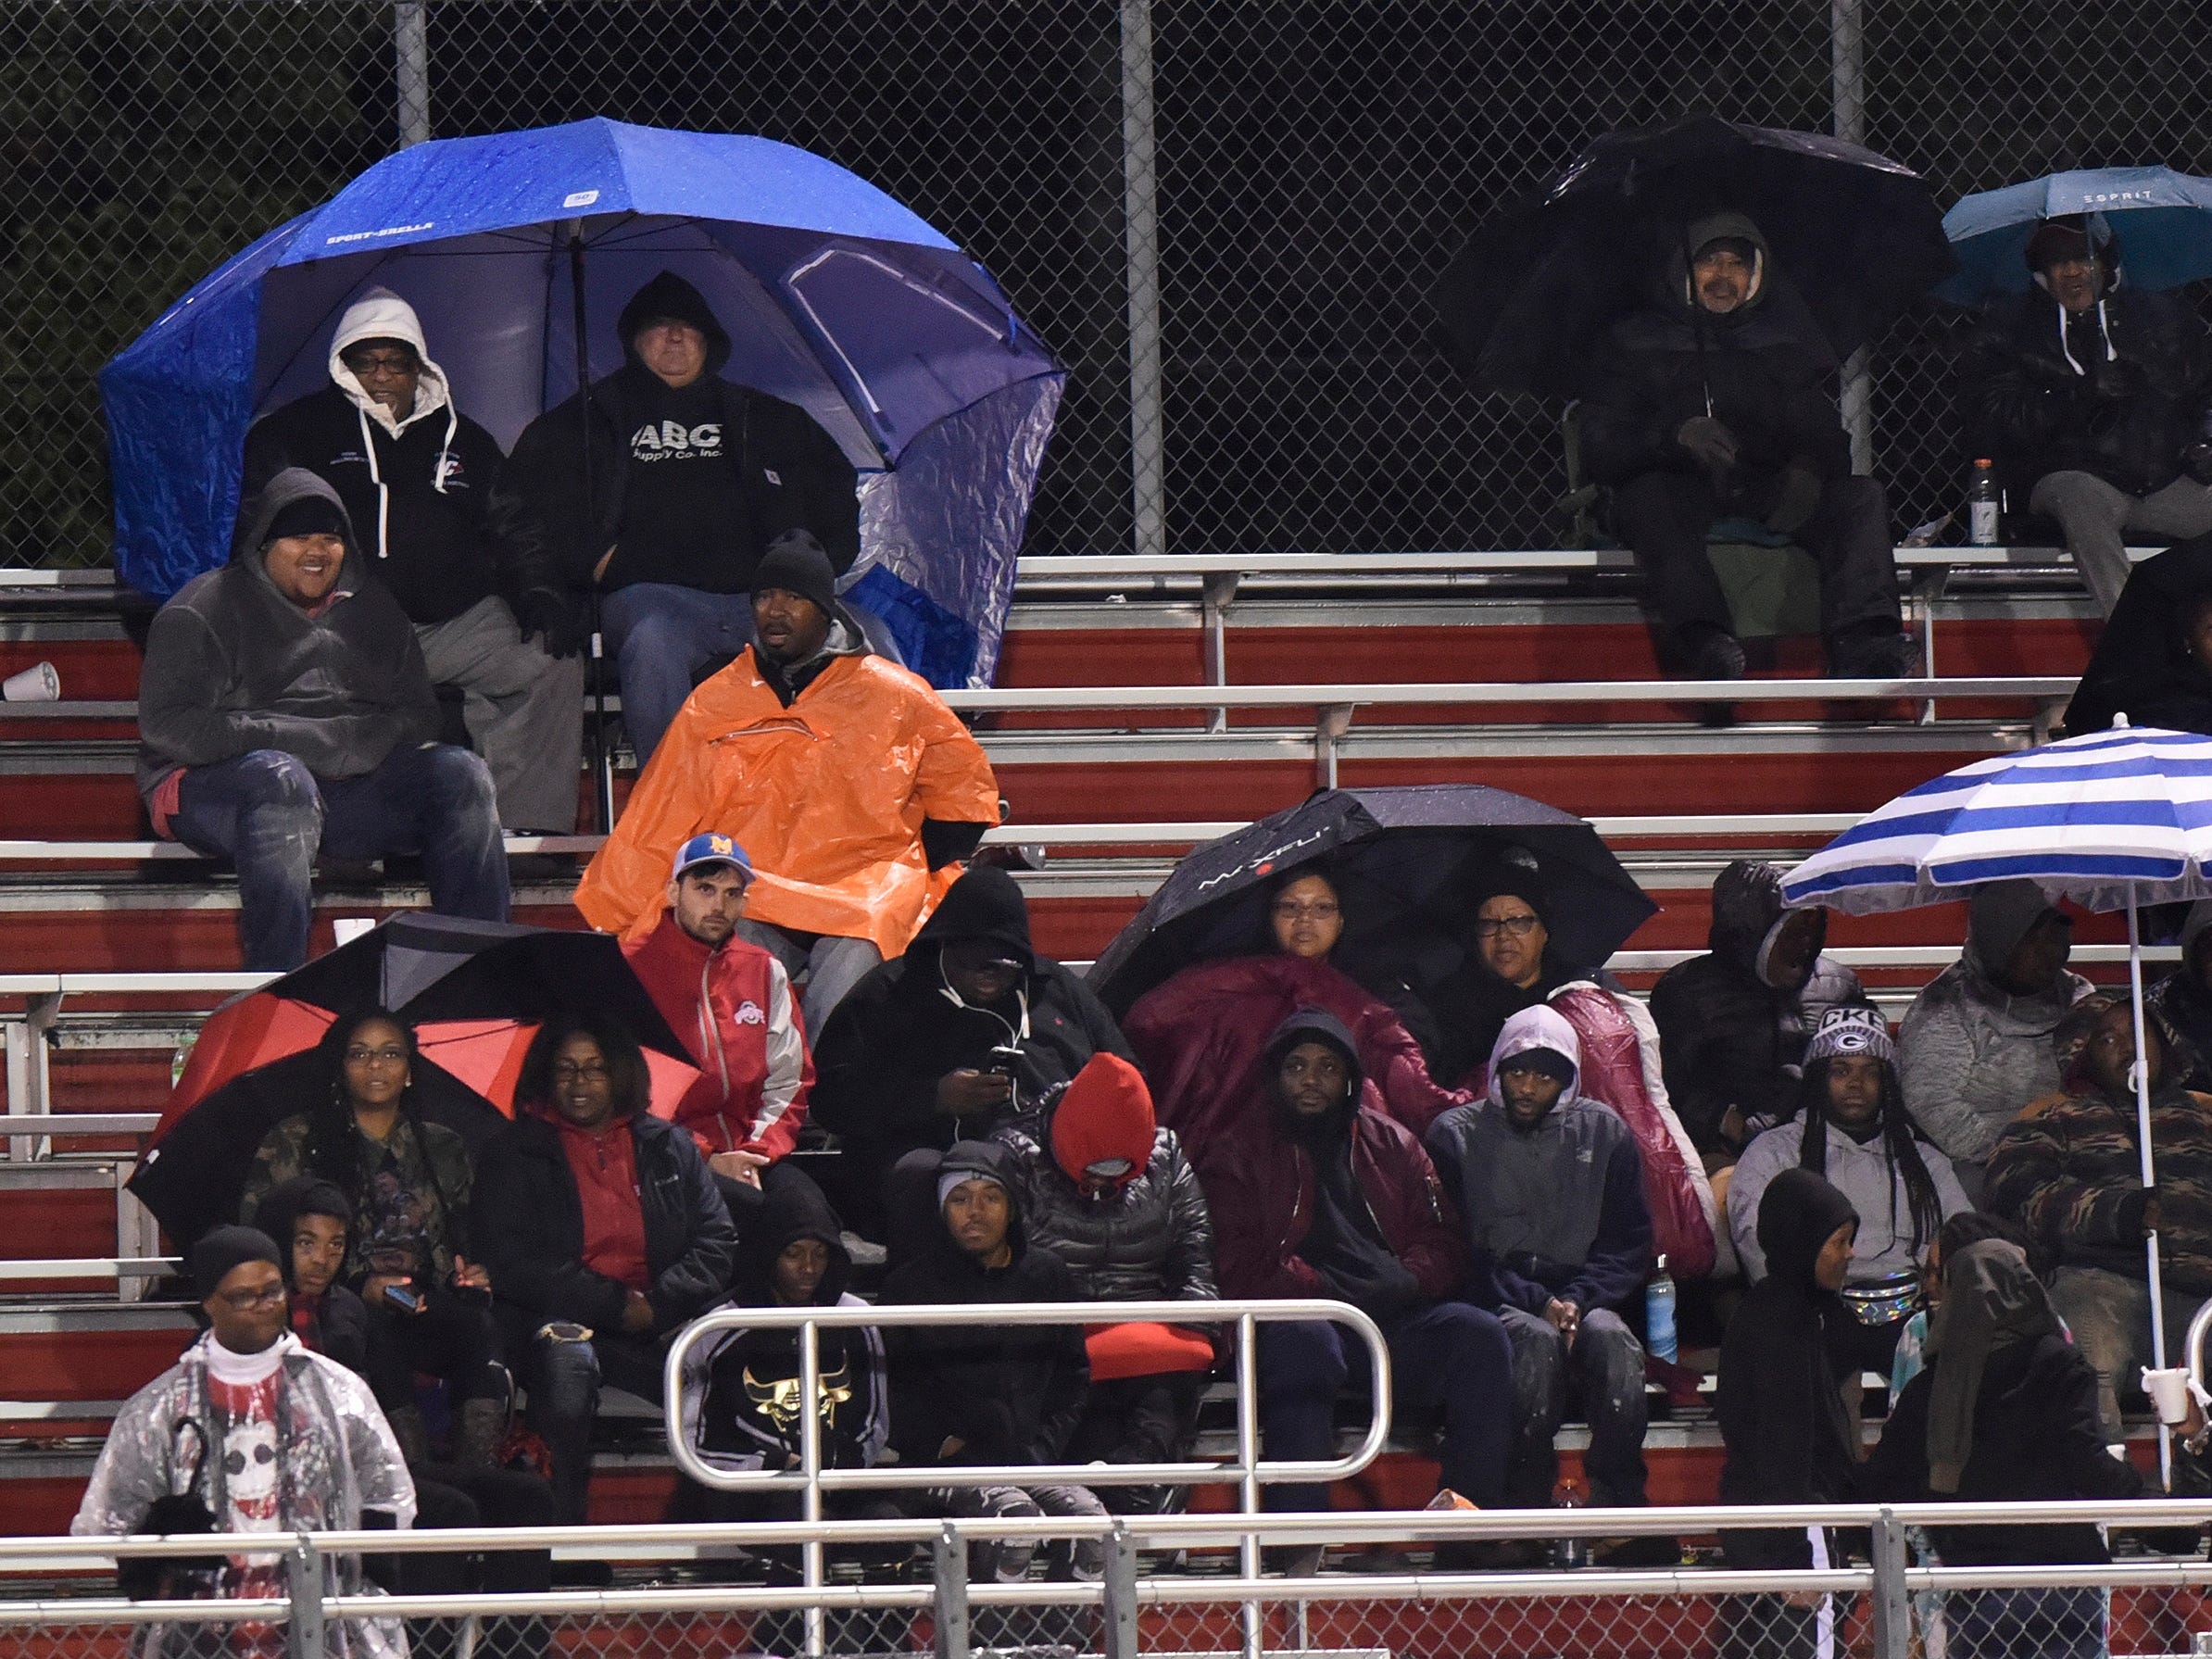 Oak Park fans braved the cold and rain as they watched their team play against West Bloomfield in the fourth quarter.